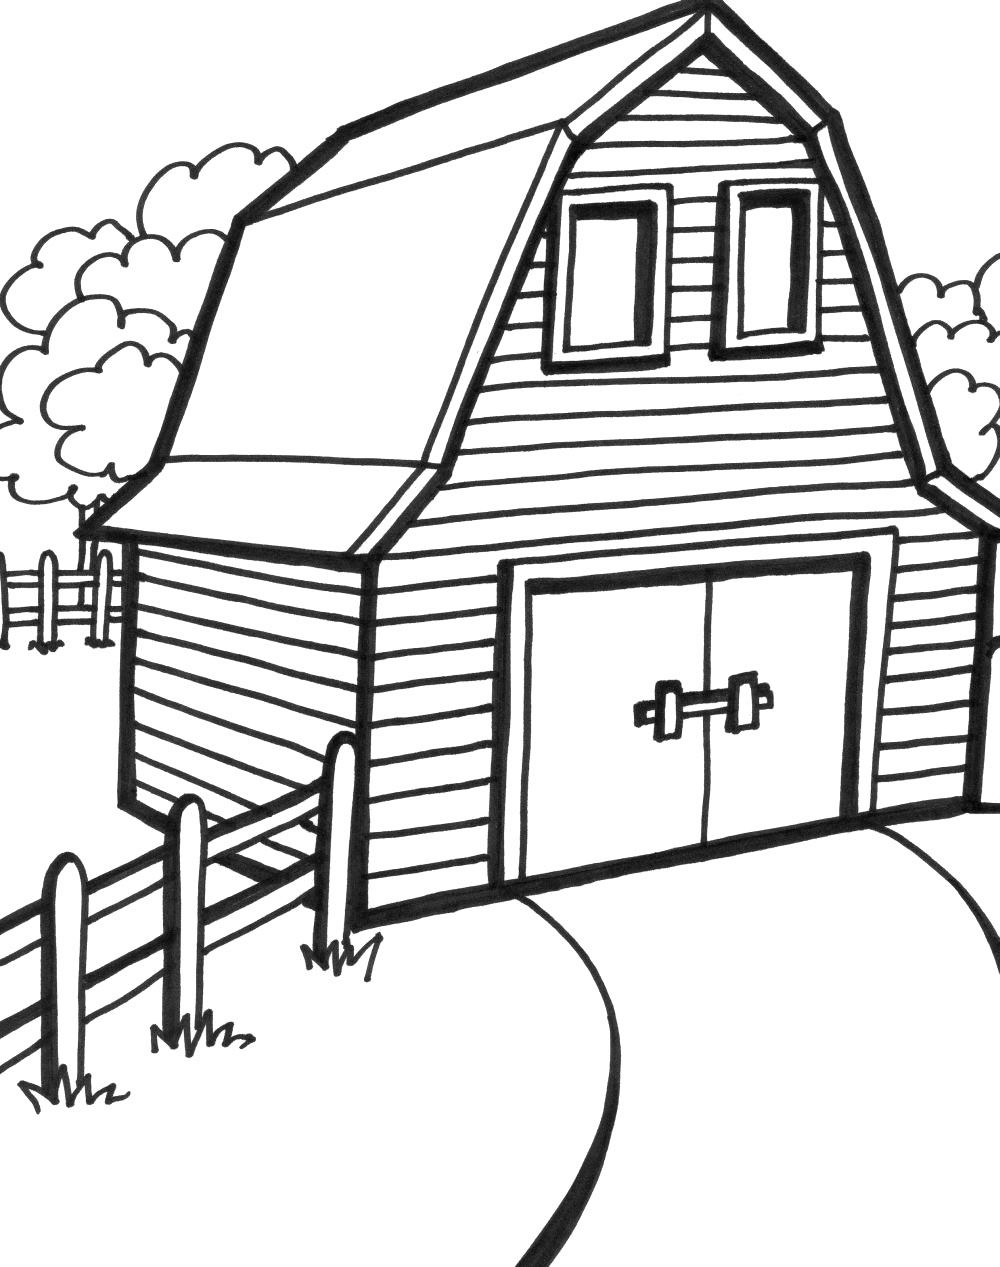 Free Printable Barn Coloring Pages - High Quality Coloring Pages - Free Printable Barn Coloring Pages